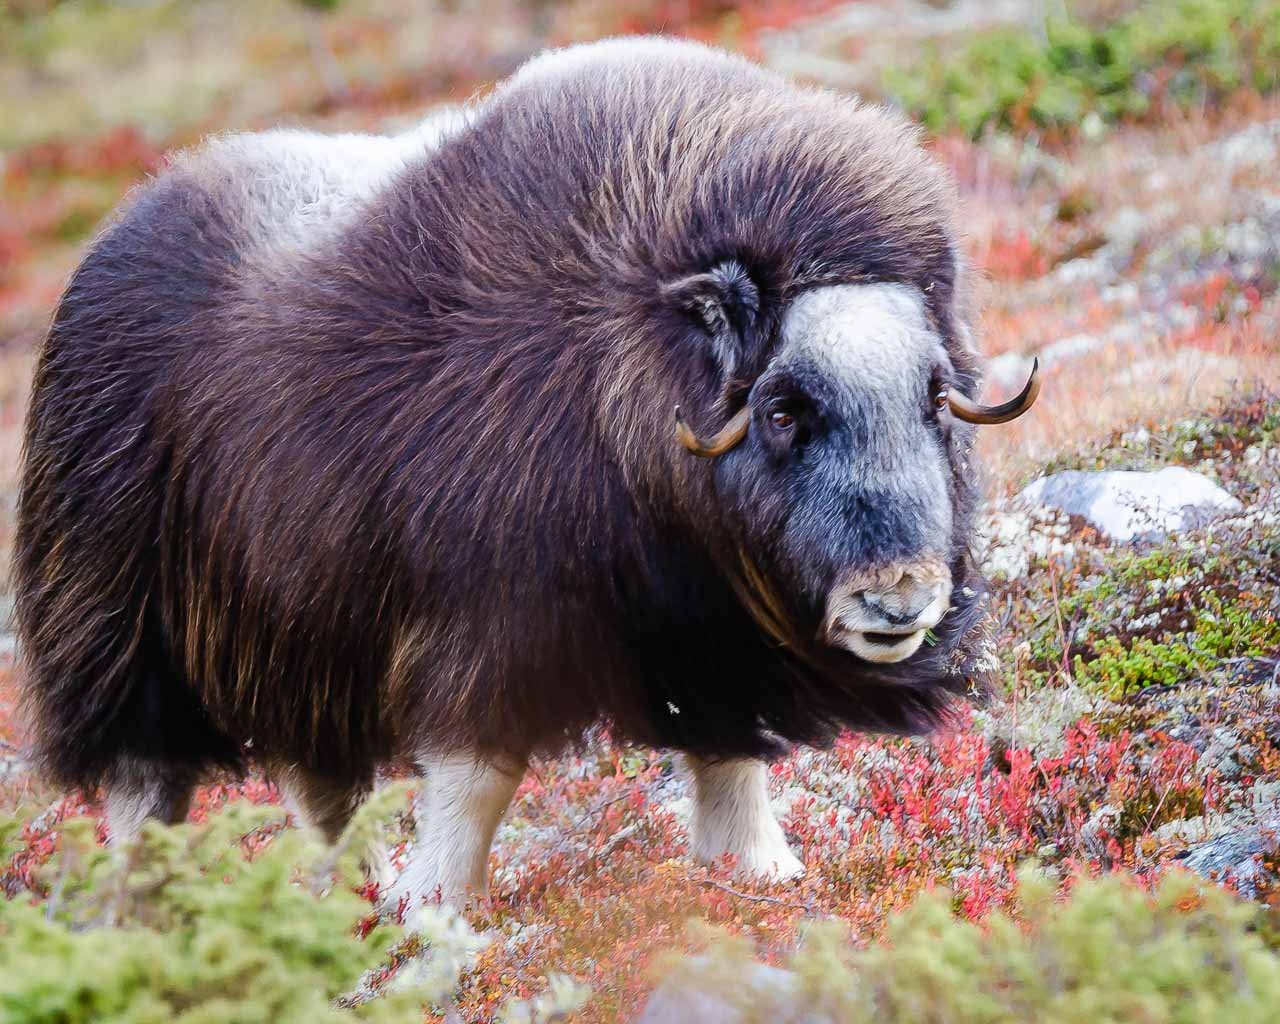 Musk Ox at Dovre